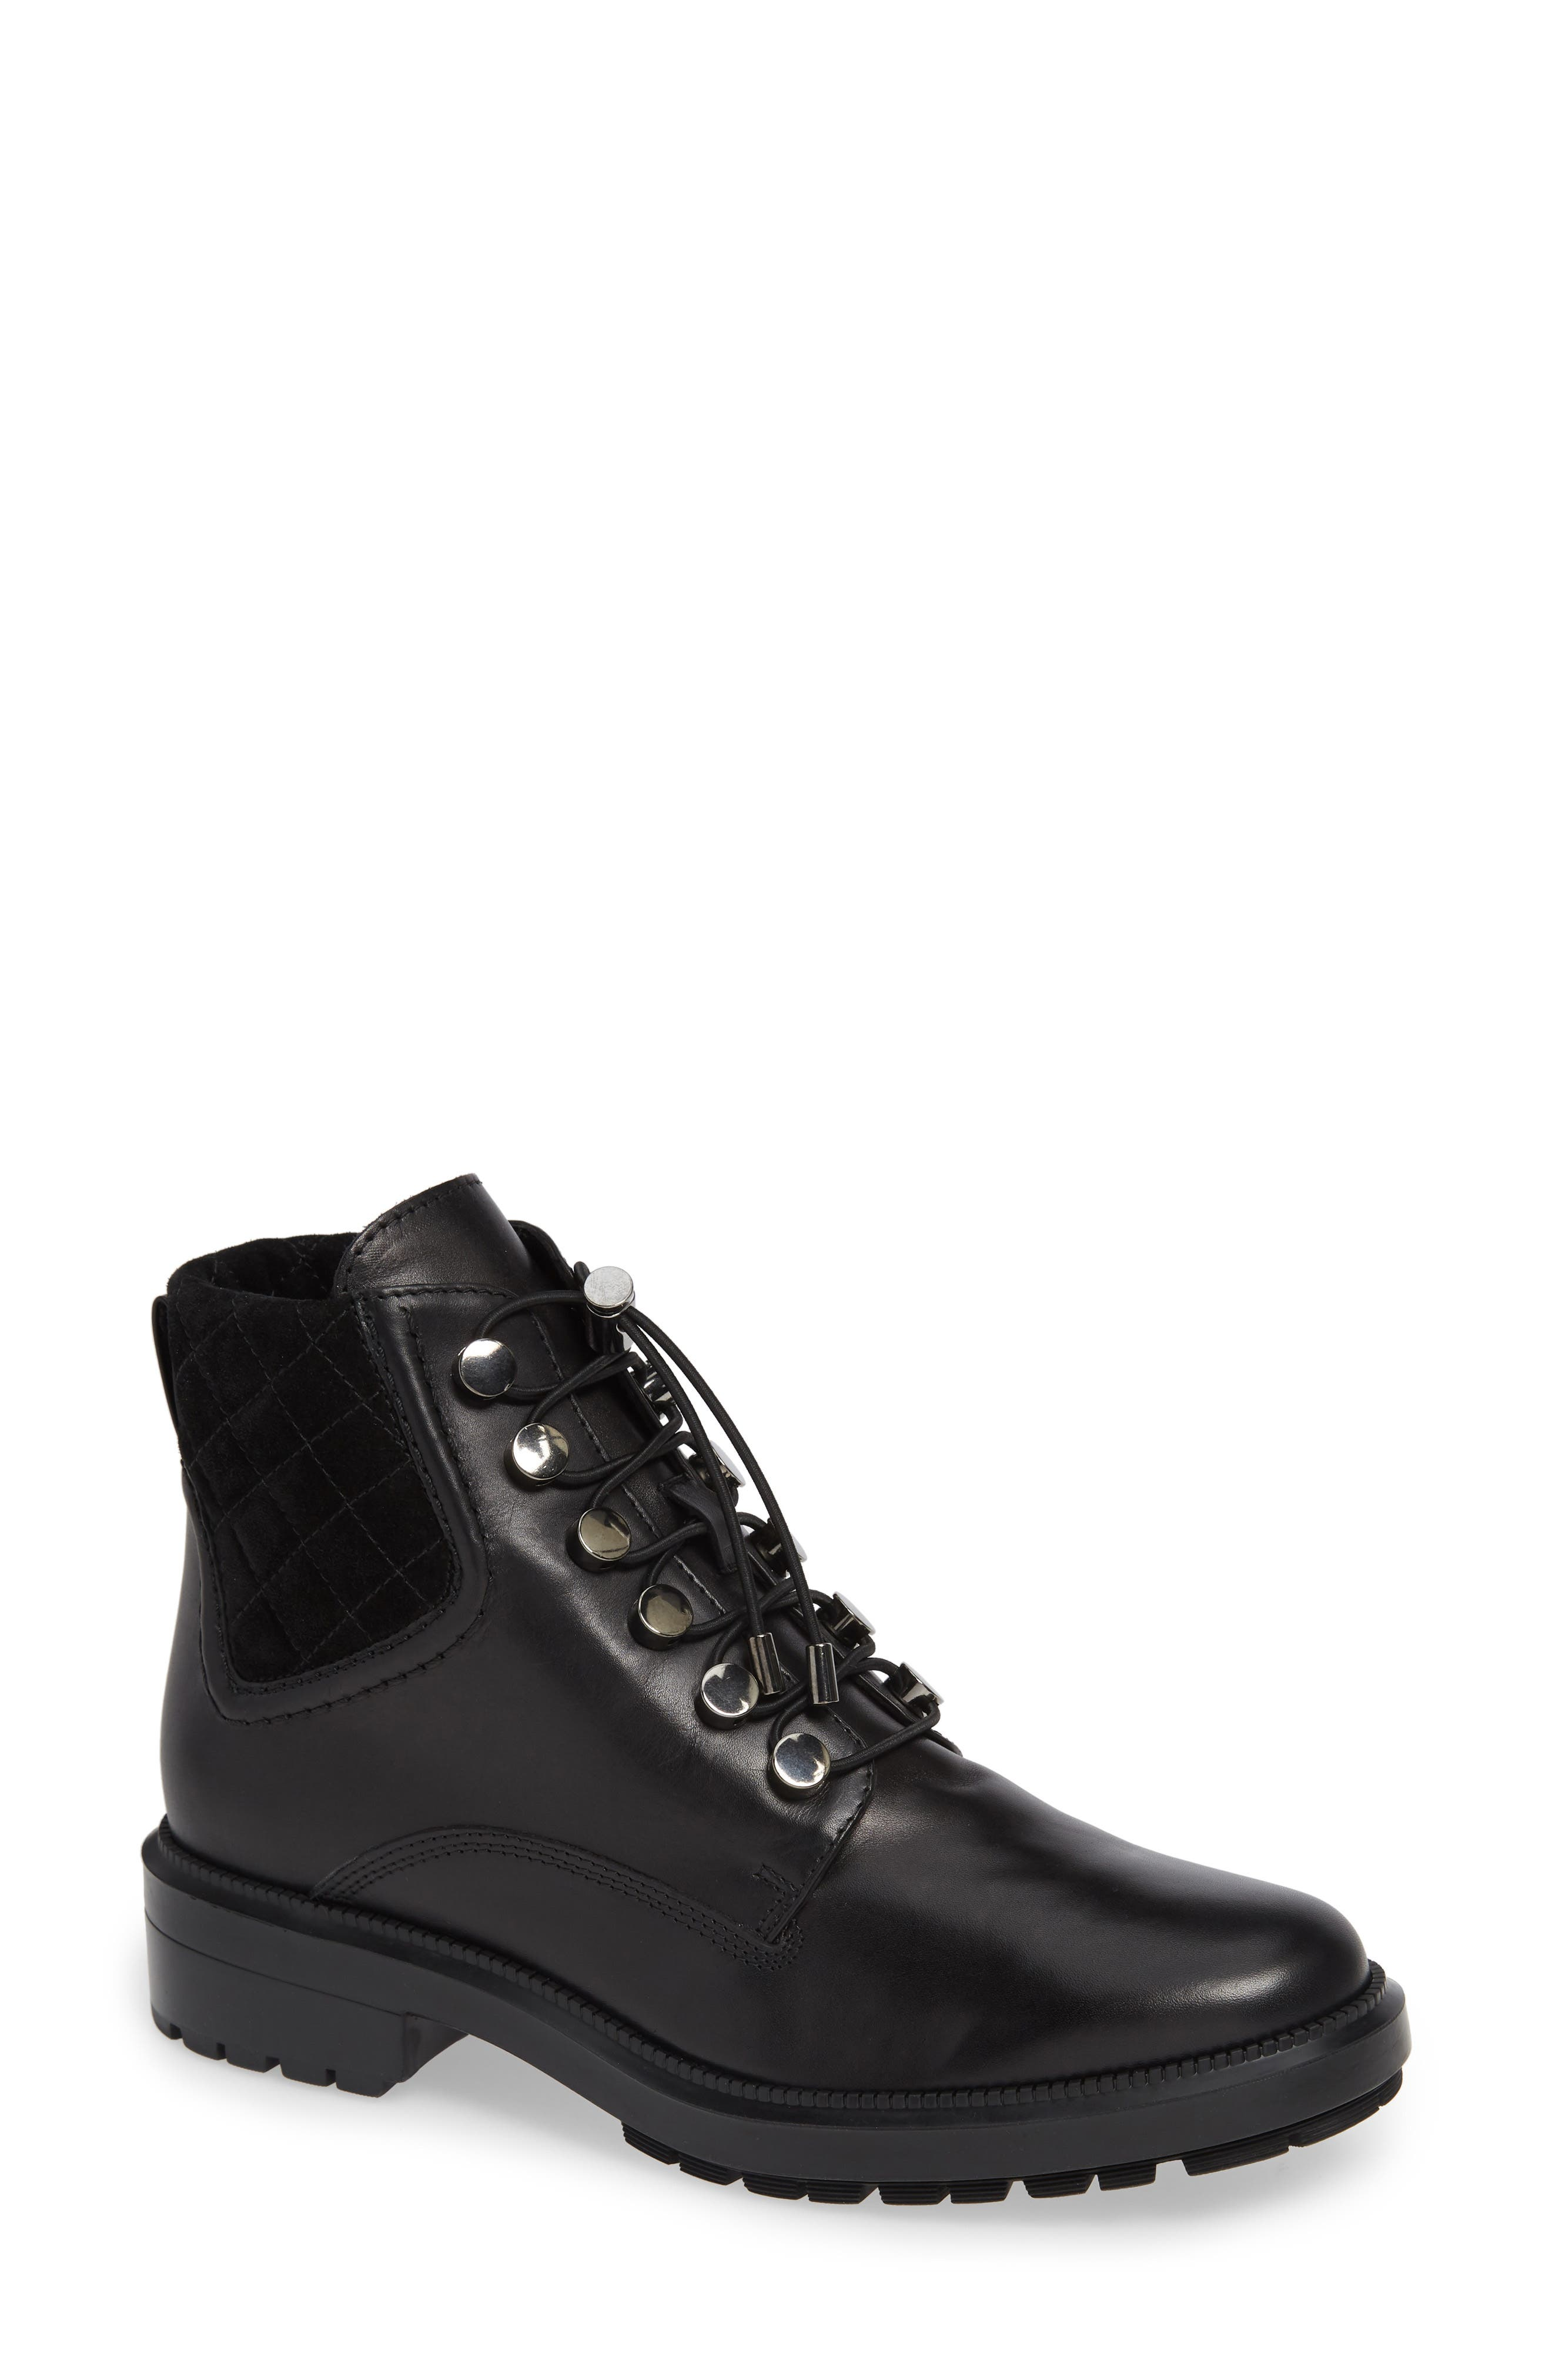 AQUATALIA Linda Leather Combat Boots in Black